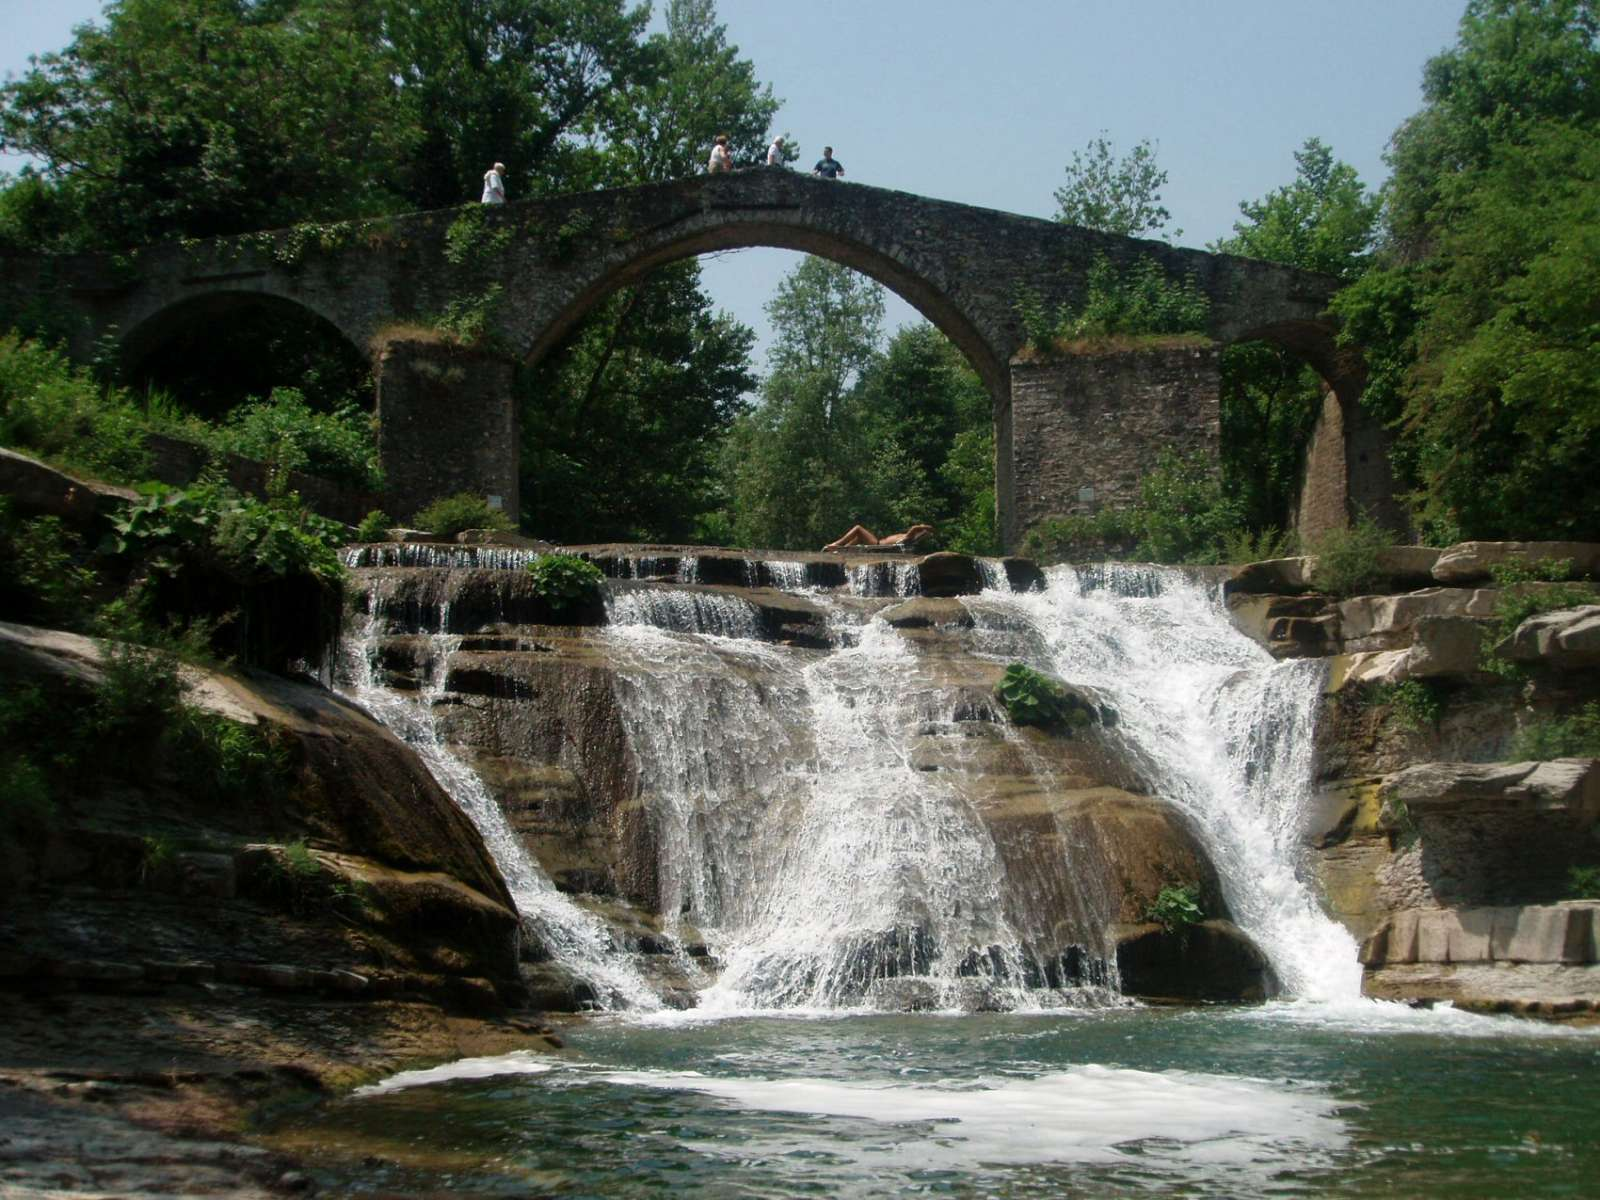 The ancient Brusia bridge with waterfall